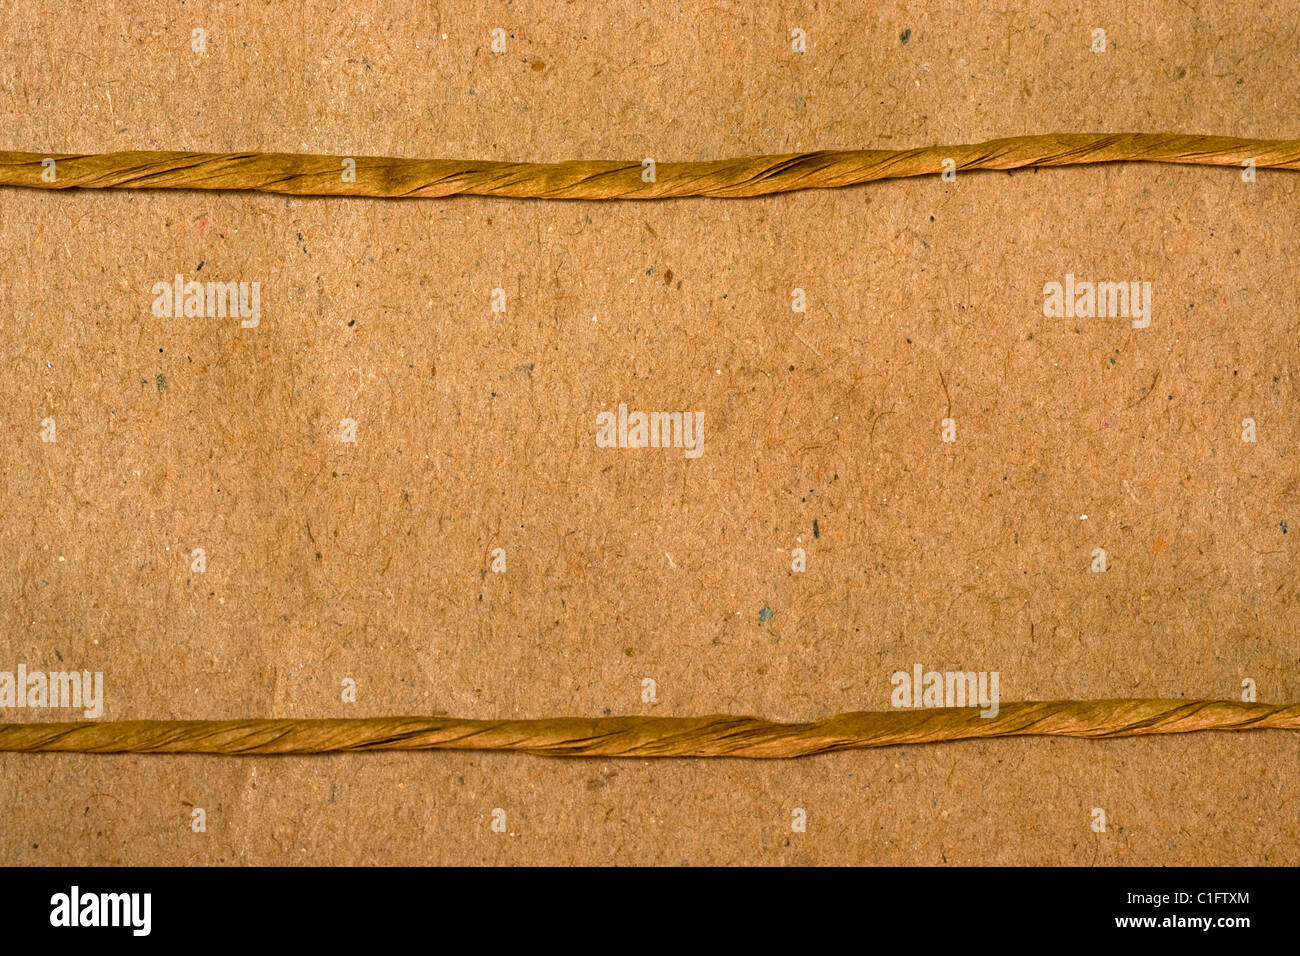 Two ropes parallel on a paper background - Stock Image